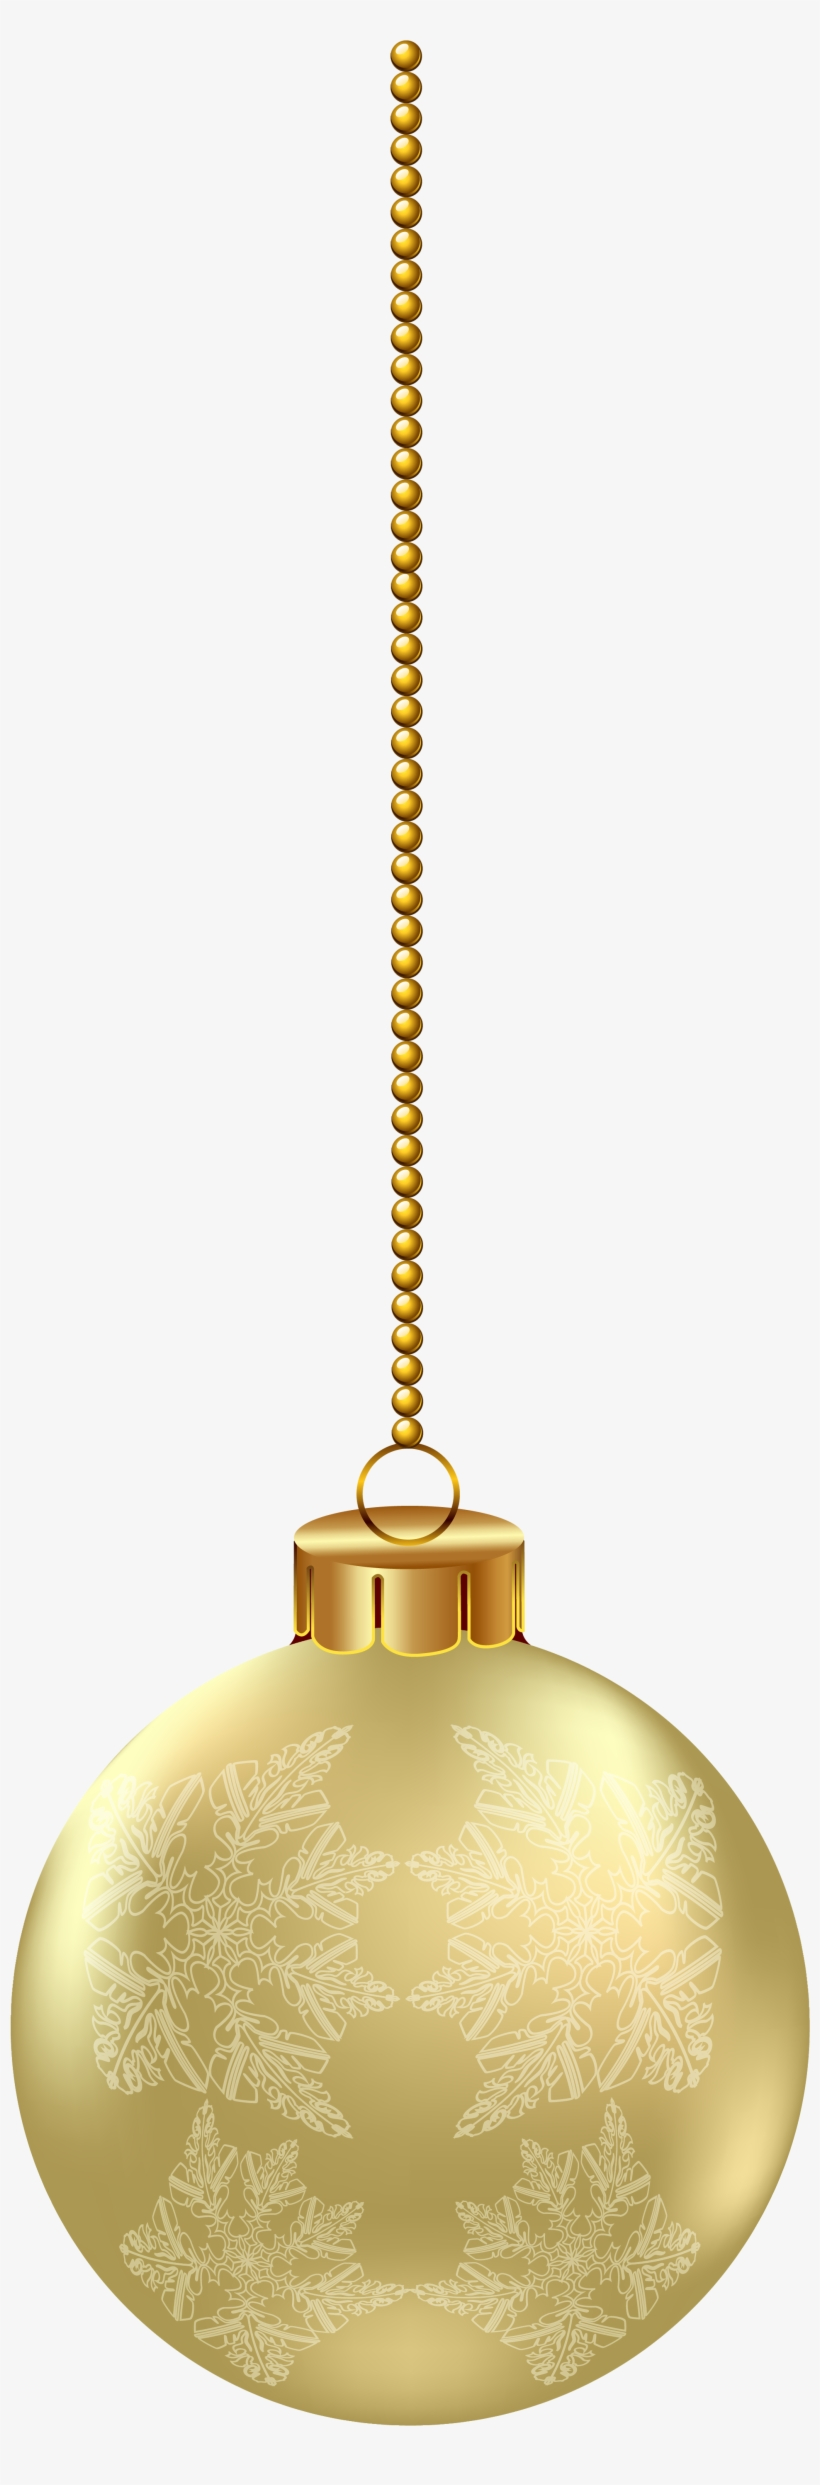 Hanging Christmas Ornament Png Clipart Image, Is Available - Hanging Christmas Ornament Png, transparent png #839874